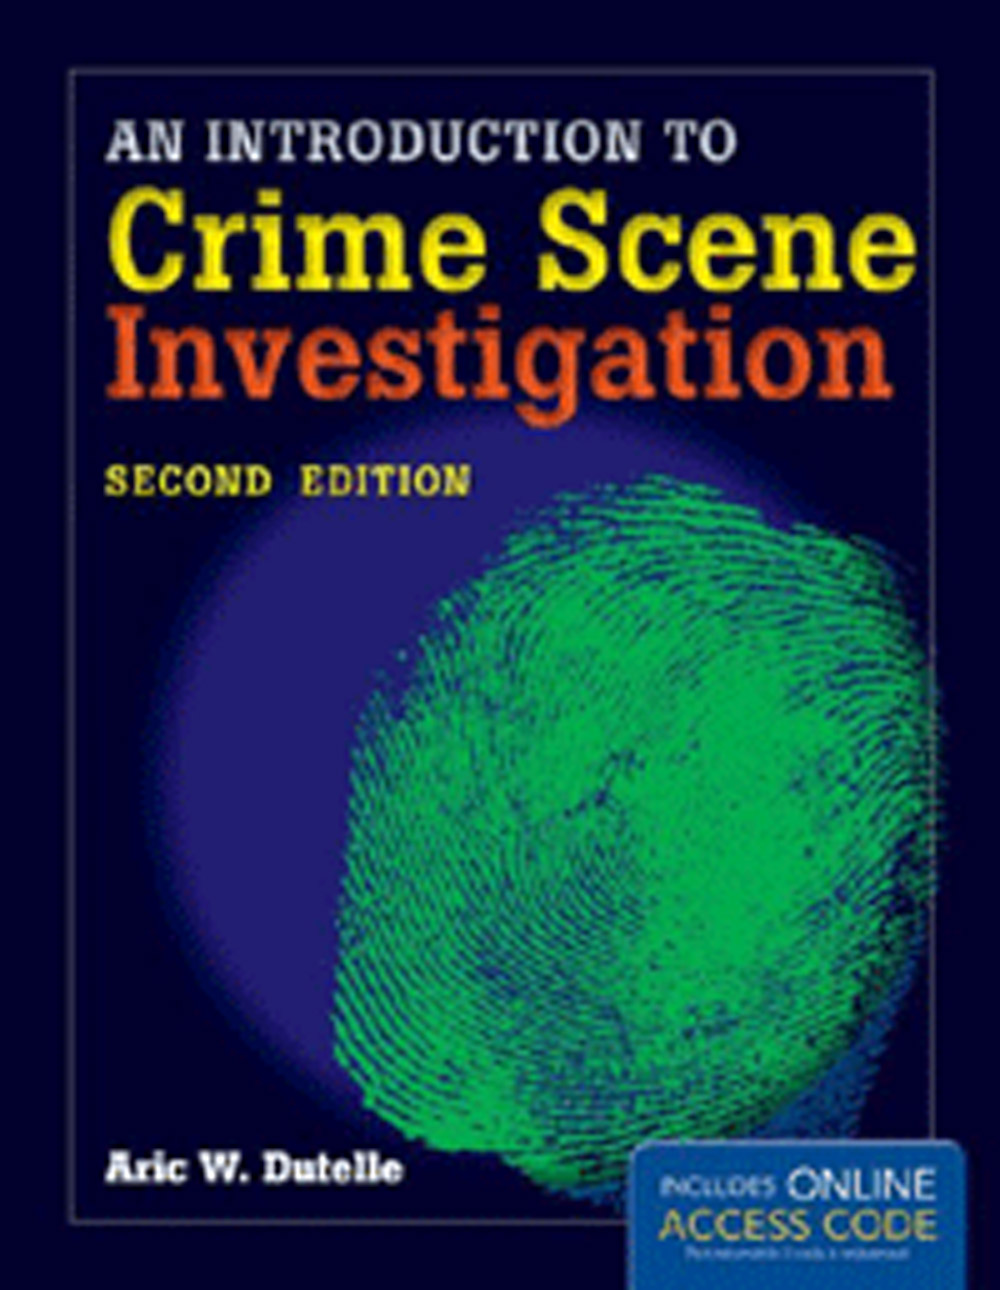 Introduction to crime scene investigation second edition pi introduction to crime scene investigation second edition pi magazine trade publication for private investigatorspi magazine fandeluxe Image collections